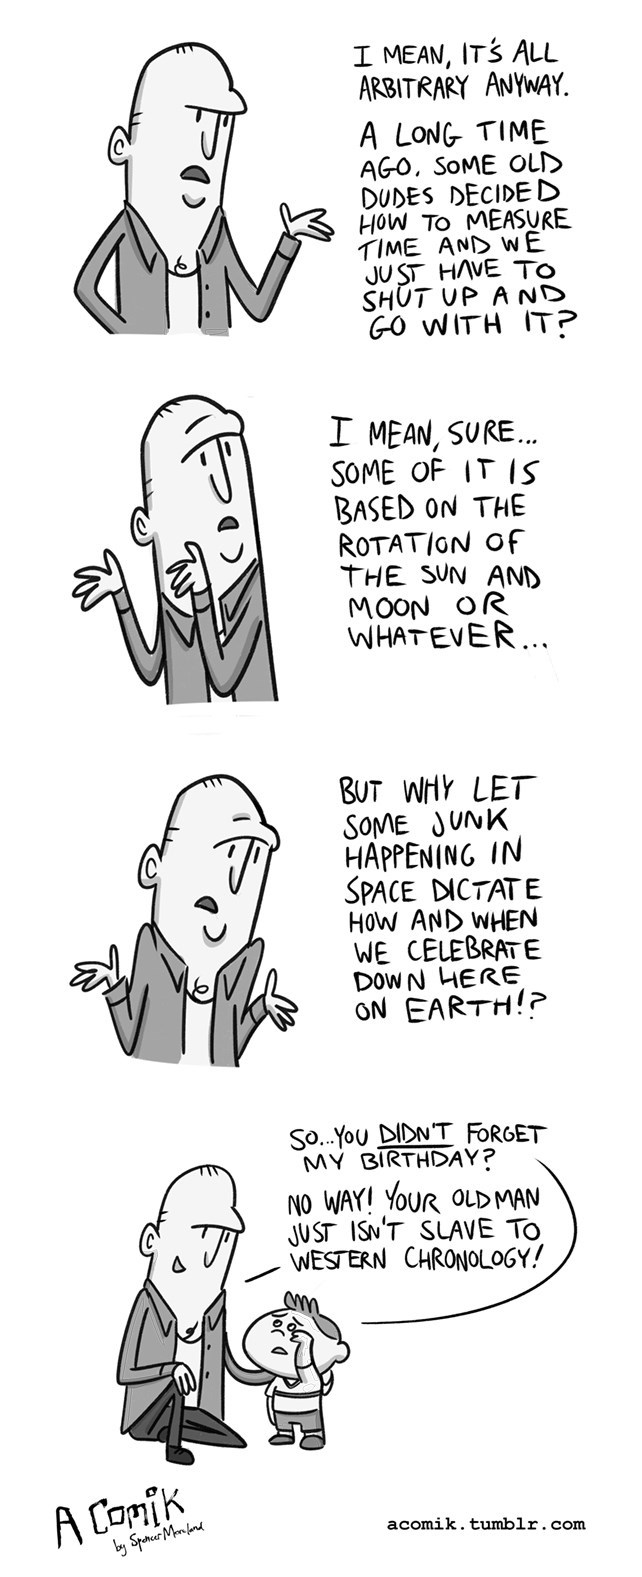 birthday web comics Do I Still Get Presents?